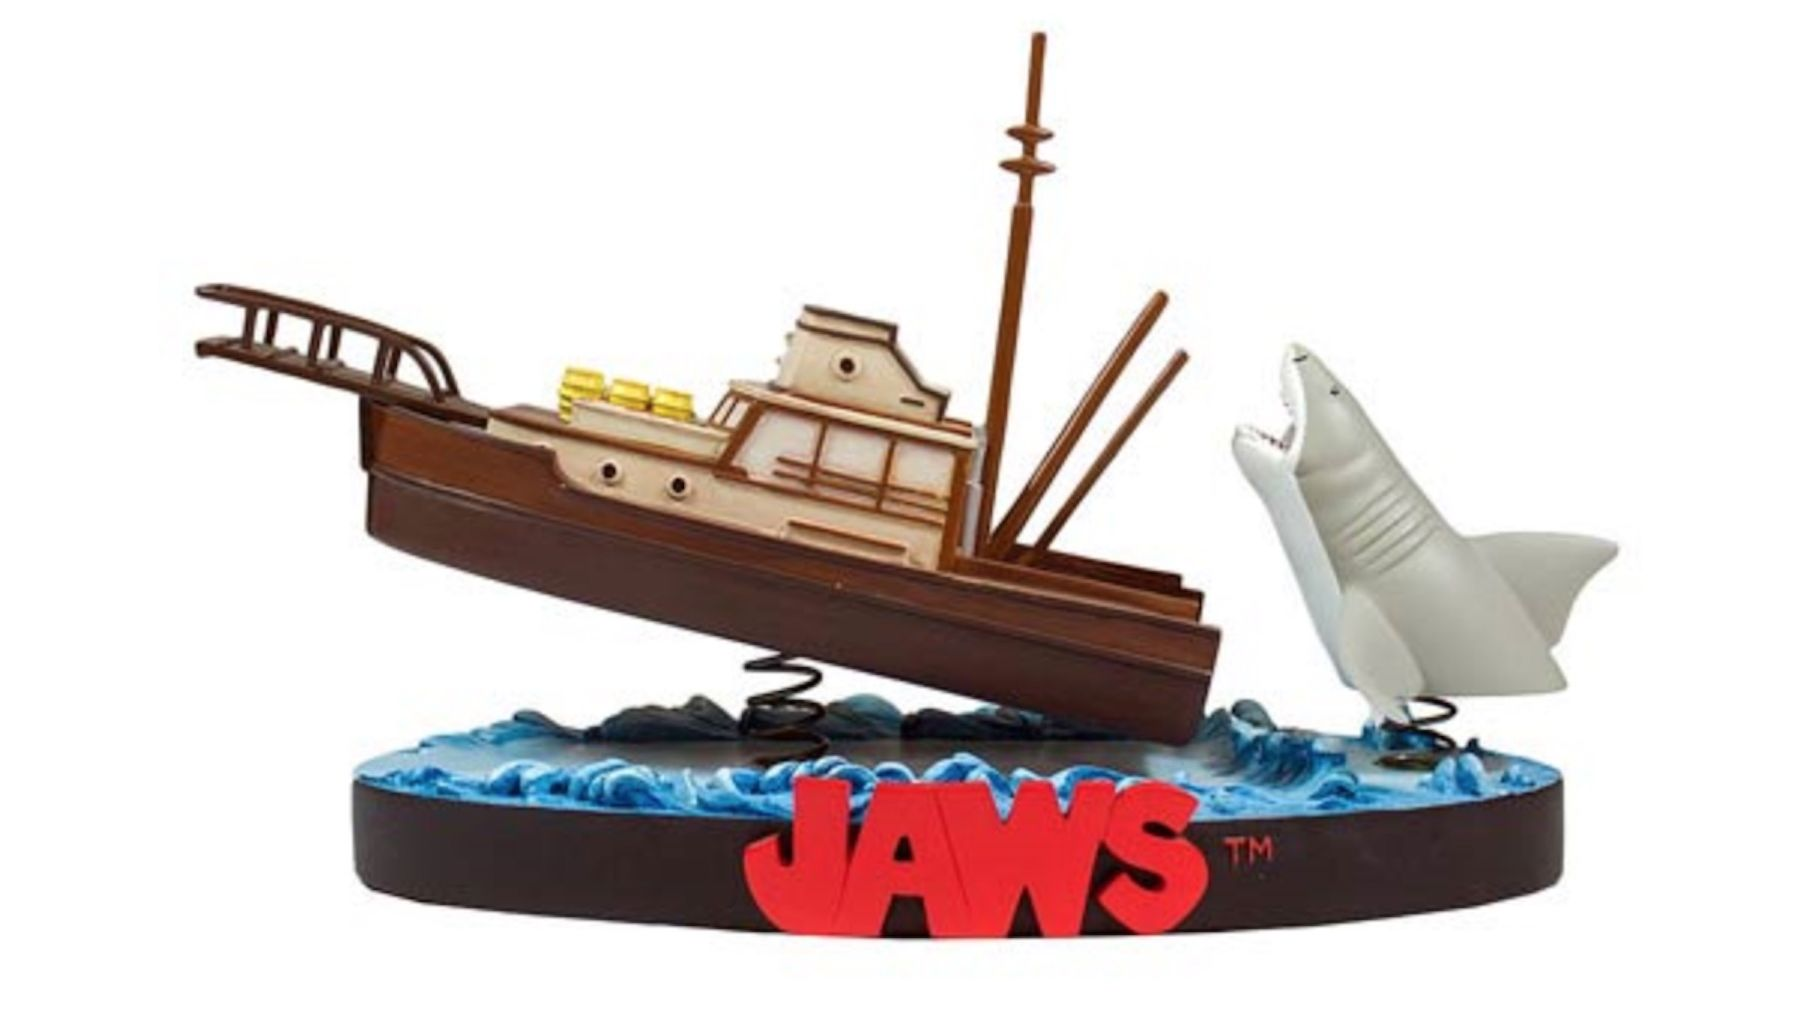 You're Gonna Need a Bigger Shelf for This Jaws Statue